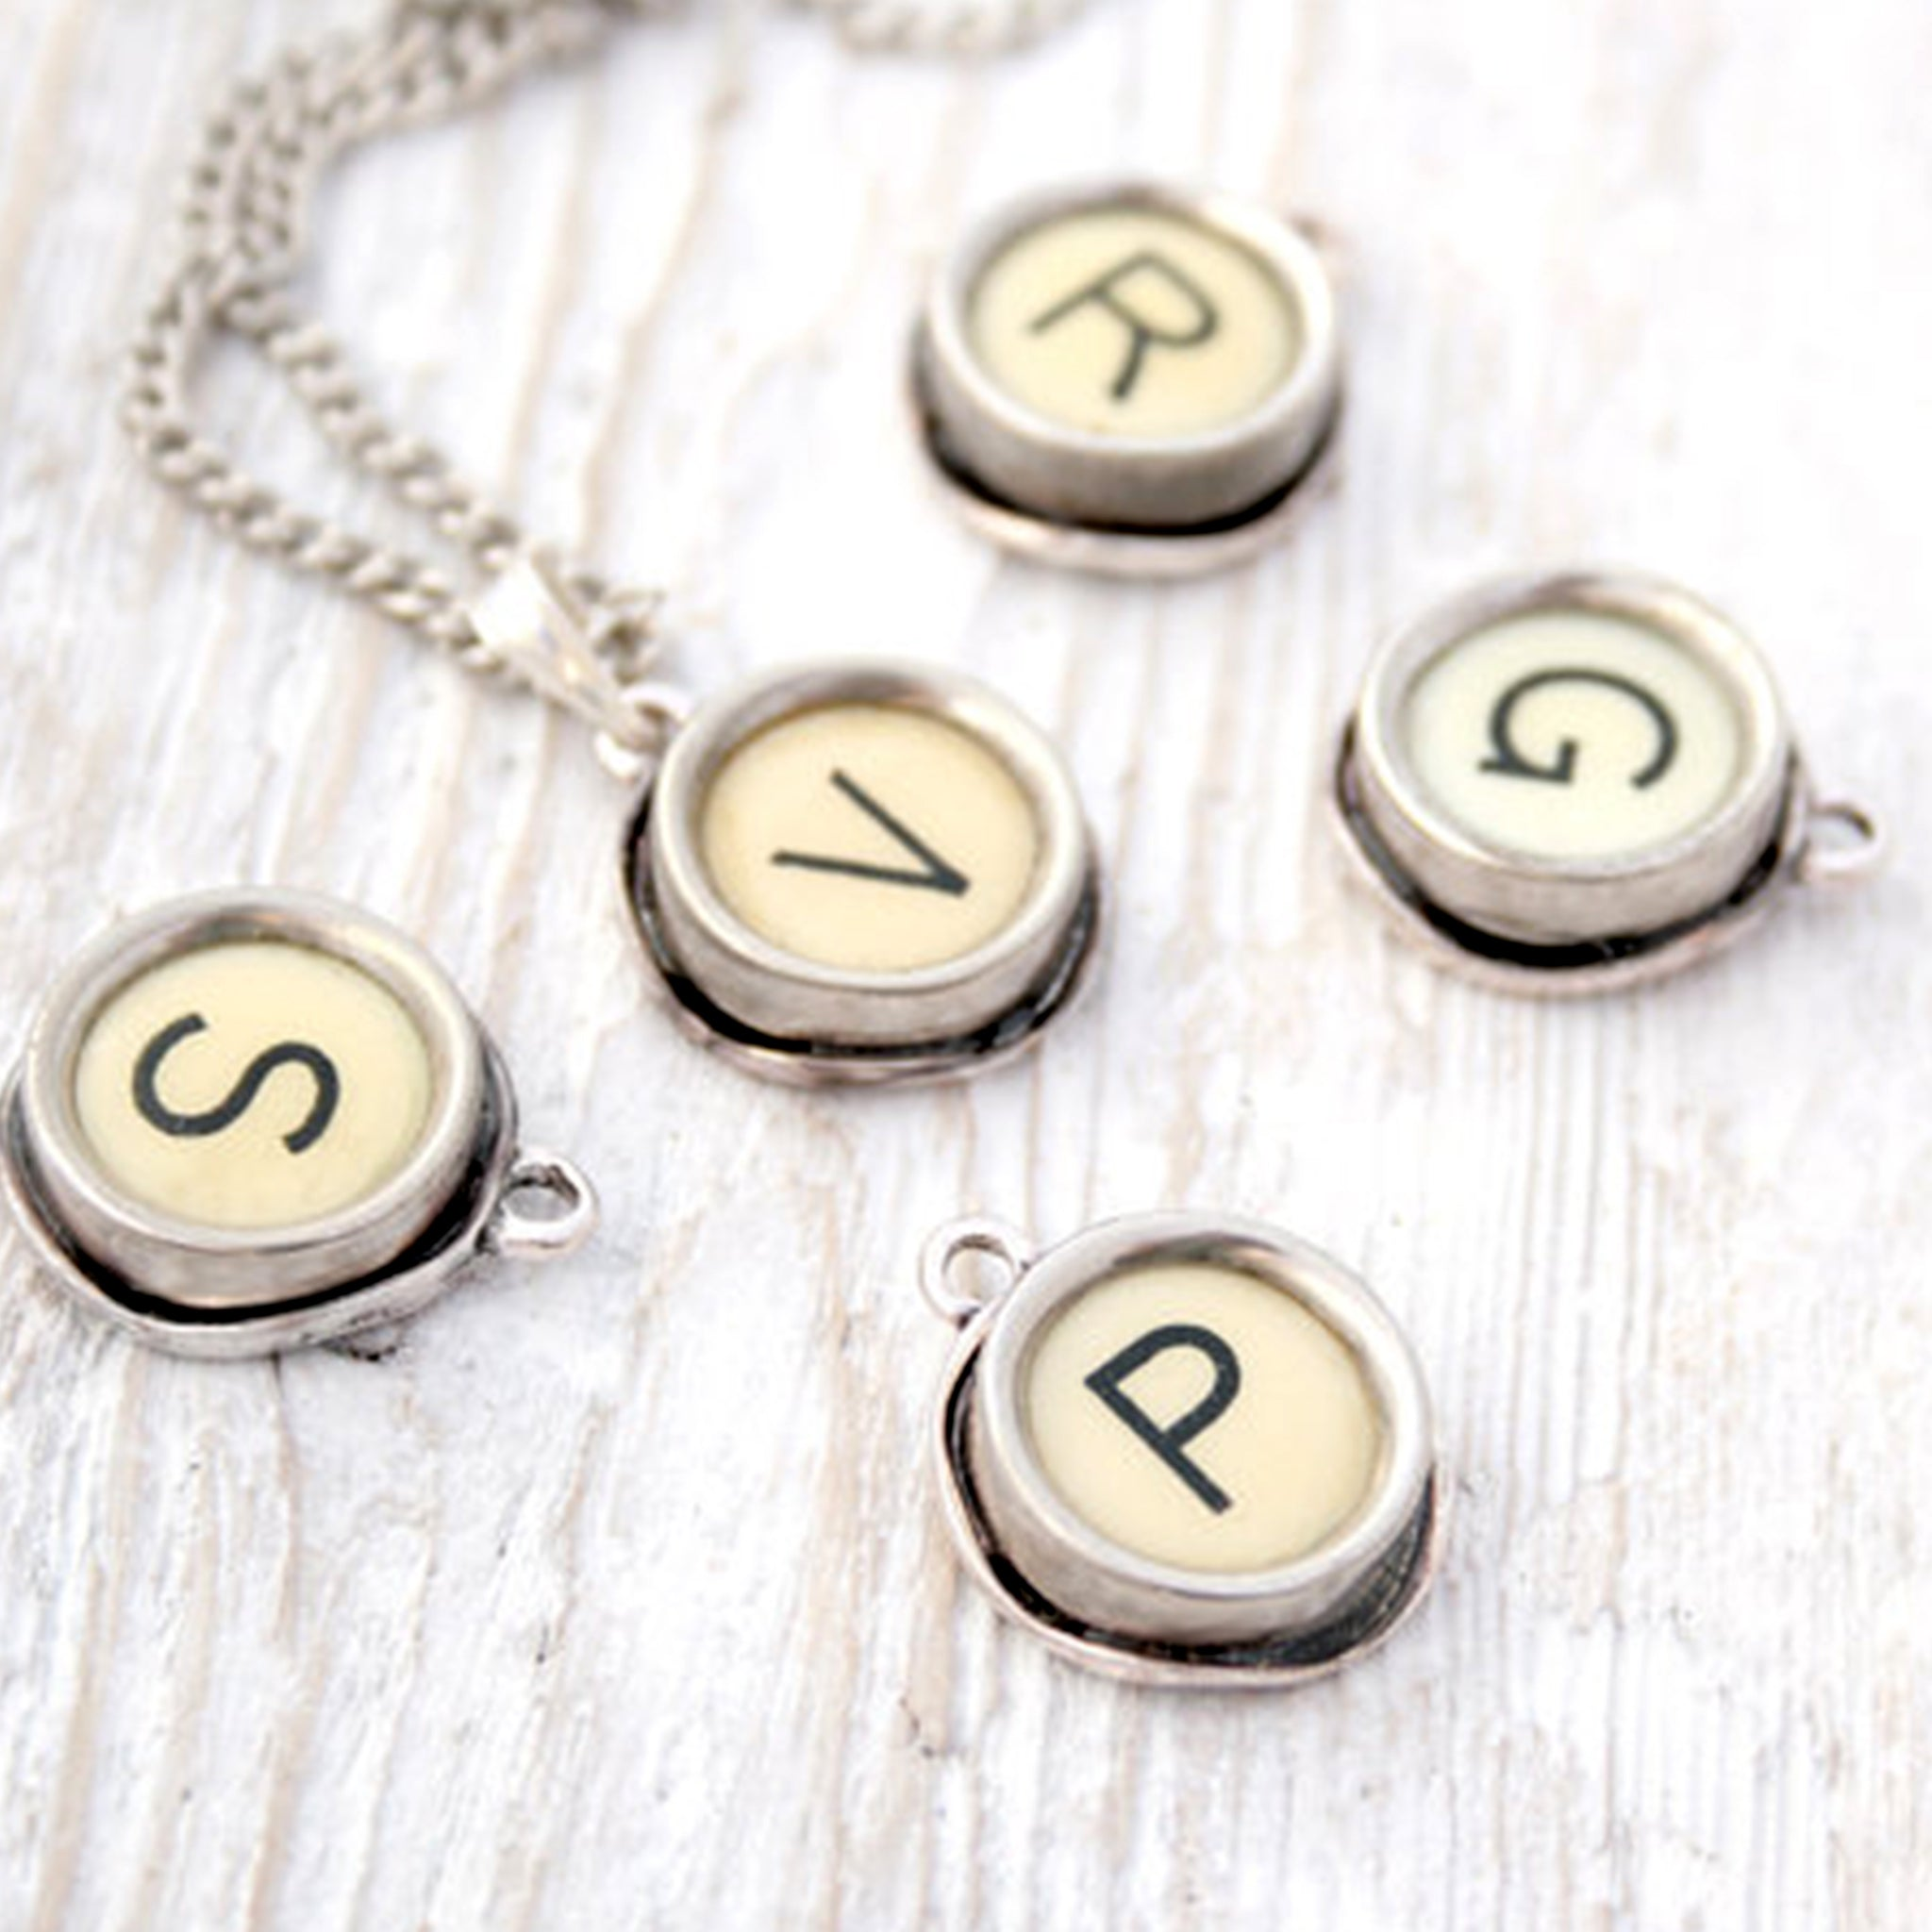 Few ivory typewriter key necklaces lying on a white surface